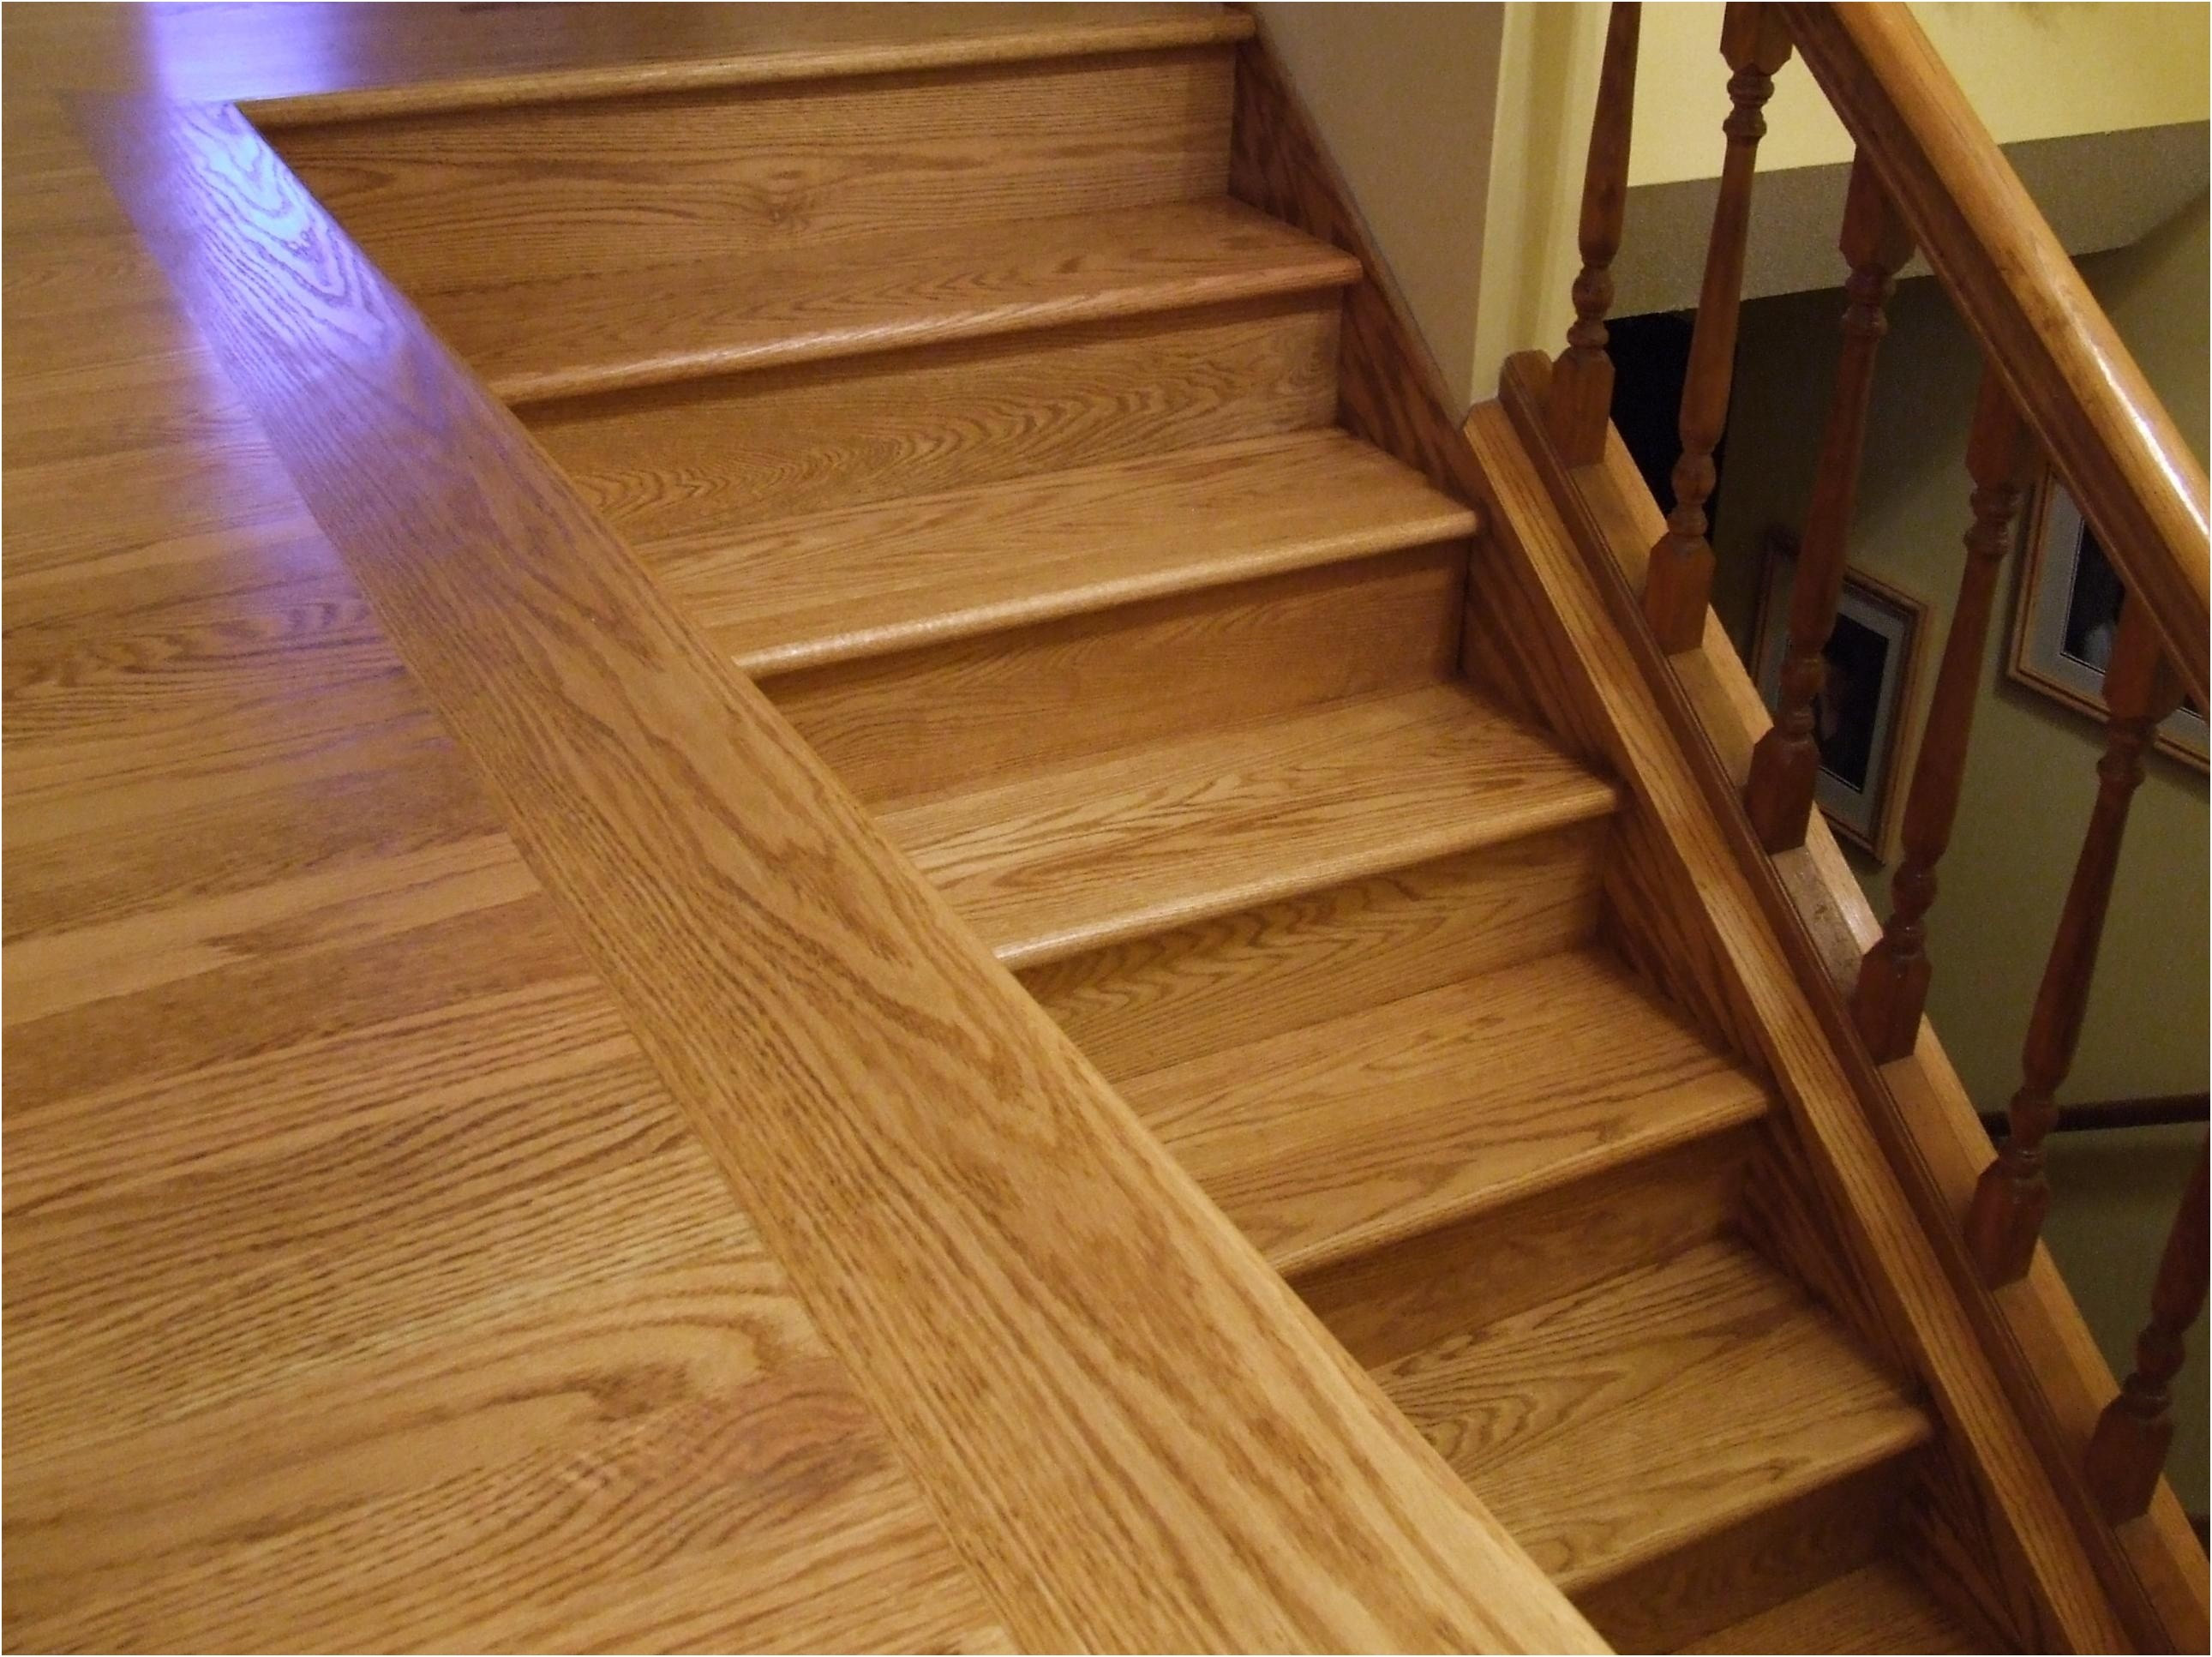 unfinished hardwood flooring prices of homemade hardwood floor cleaner unfinished hardwood floor cleaner with solid hardwood flooring homemade hardwood floor cleaner fake wood laminate maple flooring cheap pergo pricing rustic